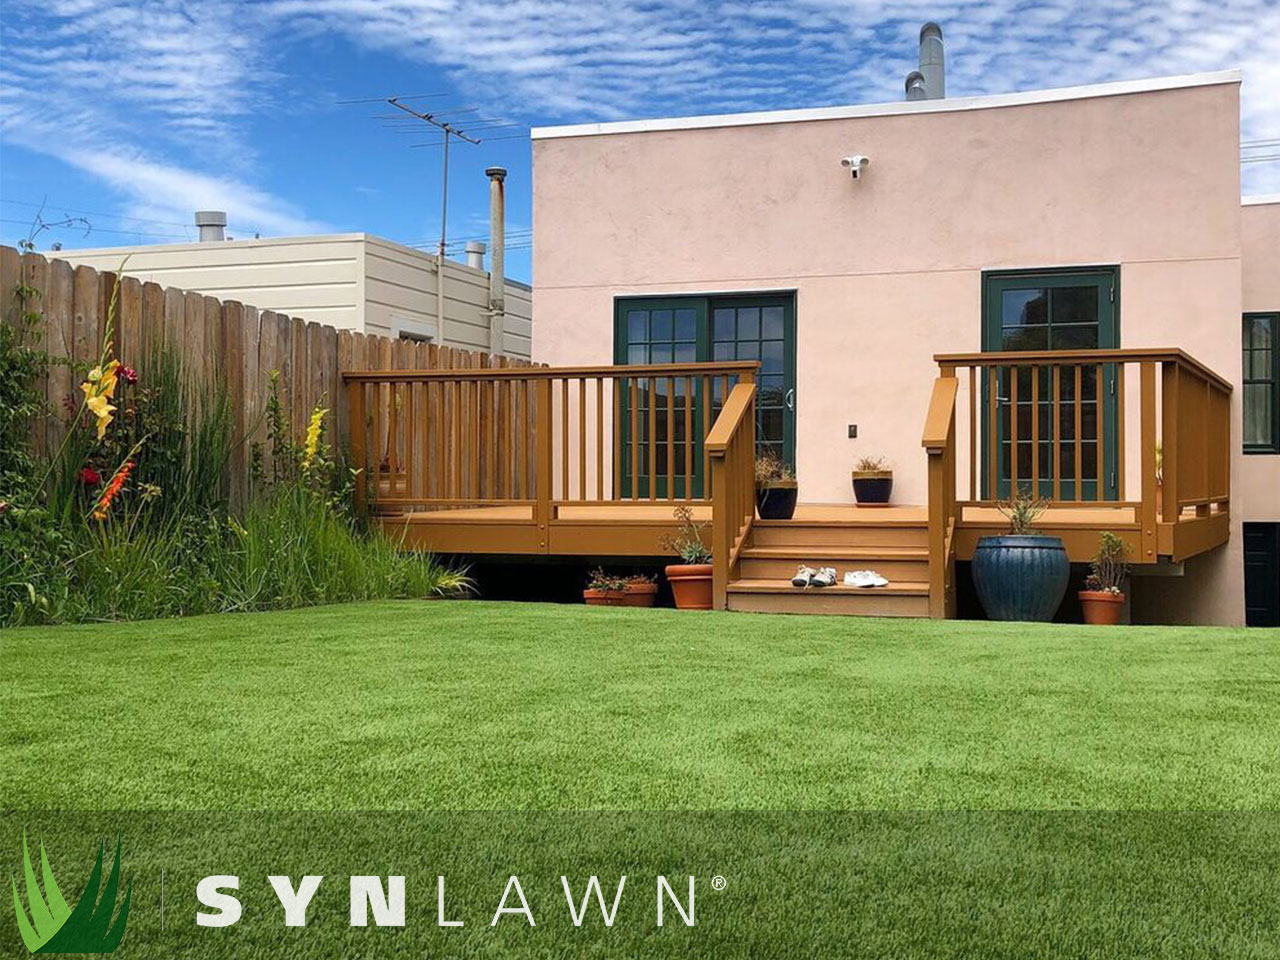 SYNLawn Landscape Photo 16